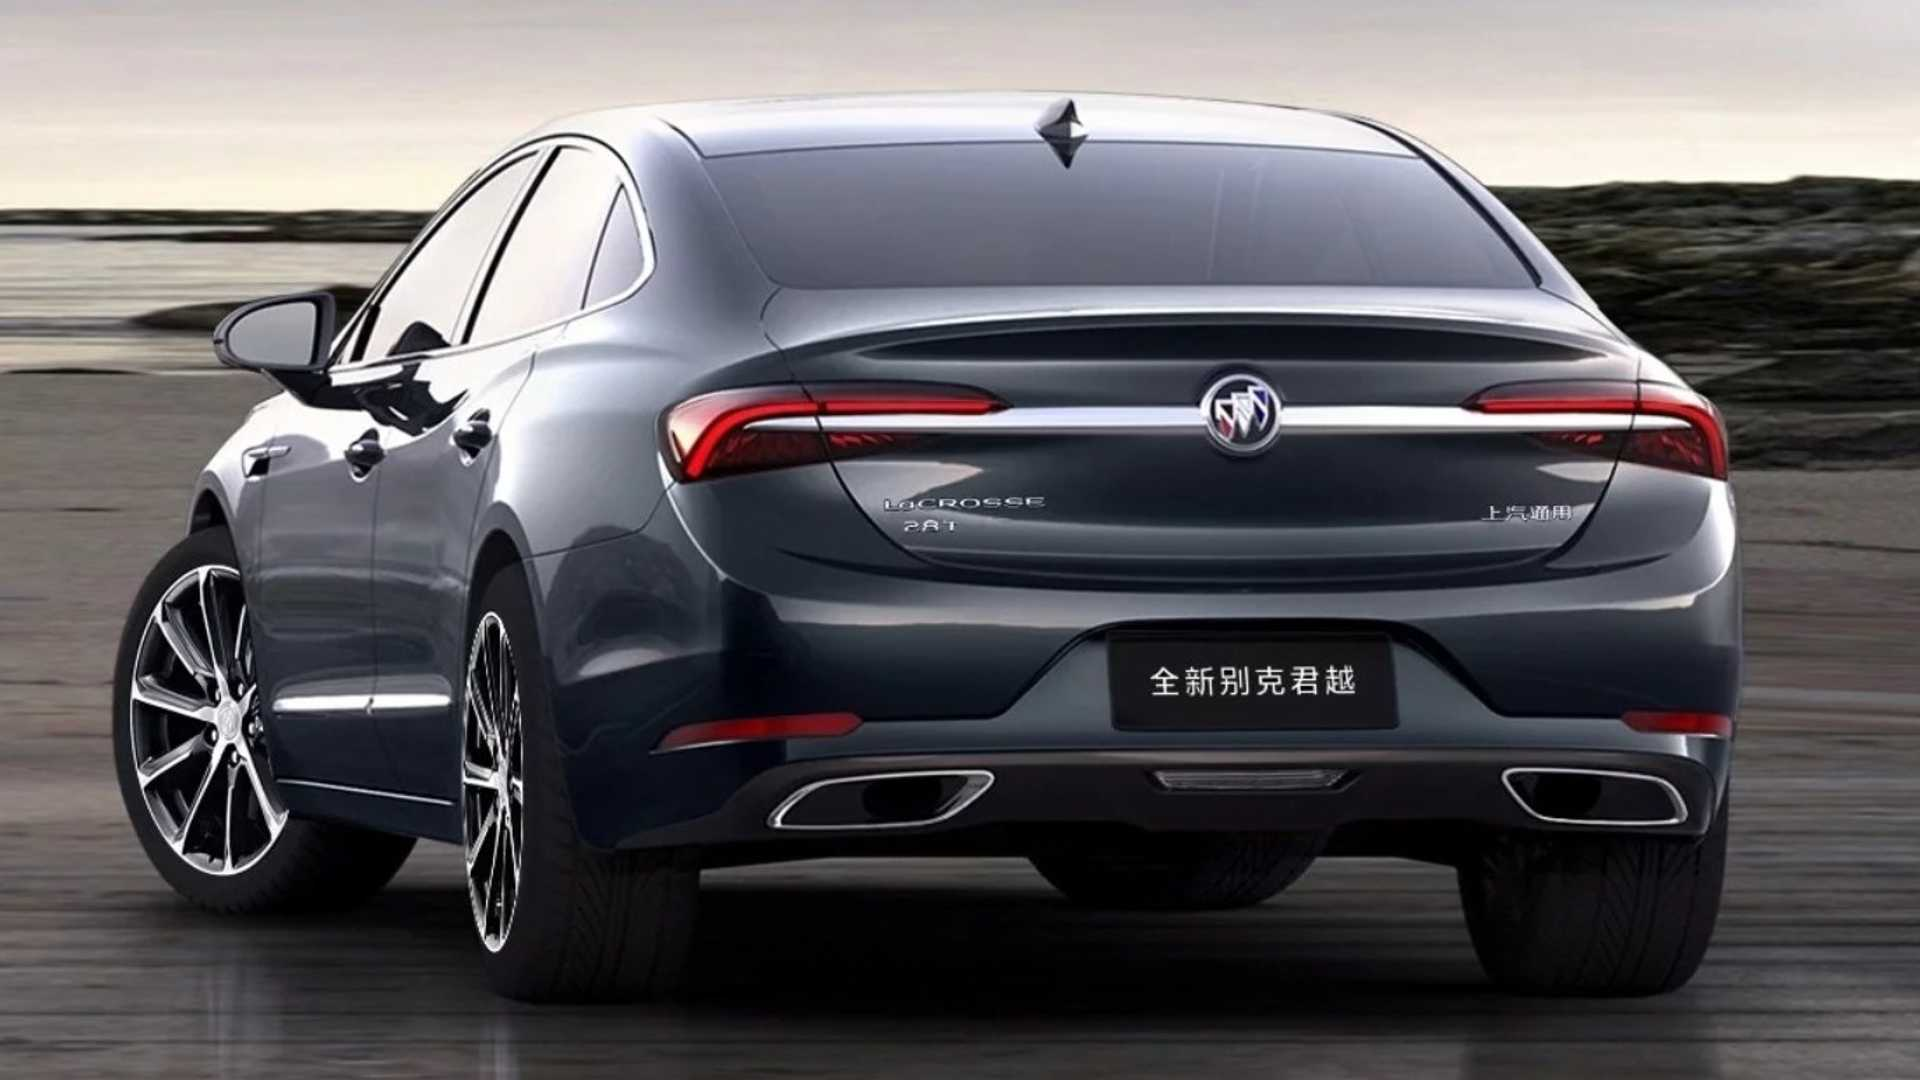 2020 Buick LaCrosse Debuts in China, Looks Like a Premium ...